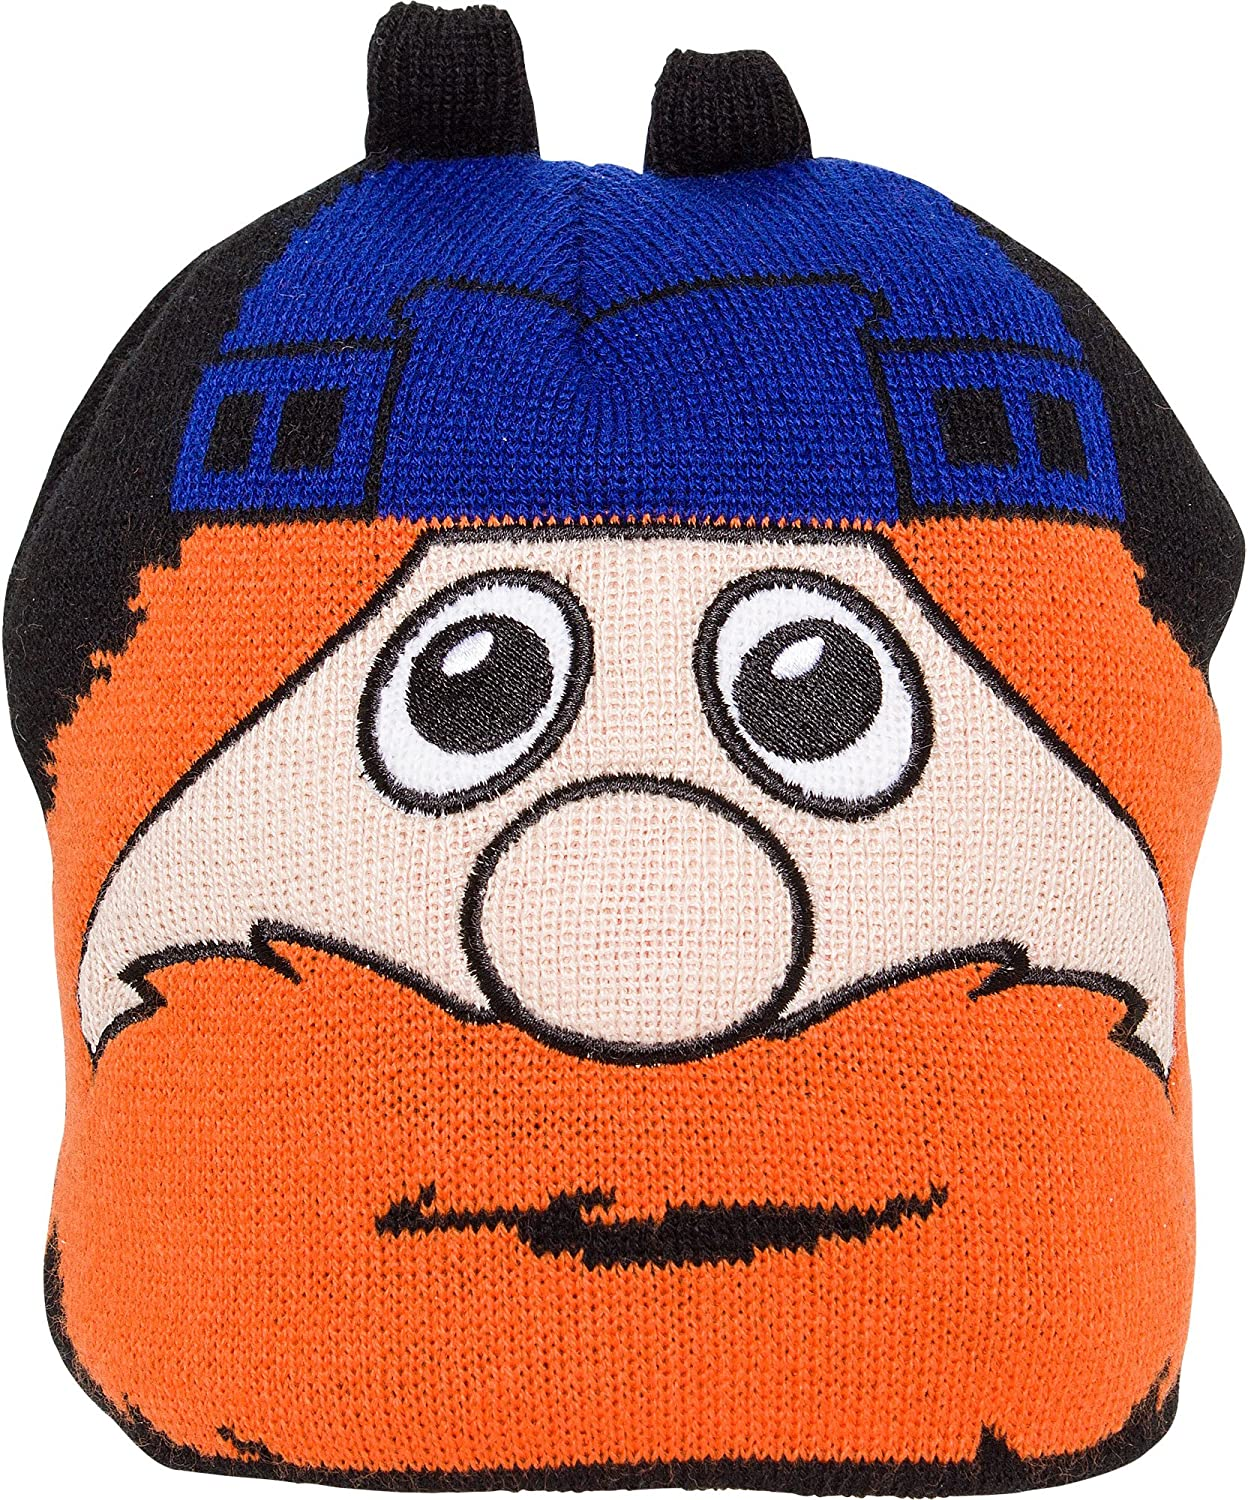 Old Time Hockey Montreal Canadiens Mascot Youppi Toddler Uncuffed Knit Hat Size Toddler